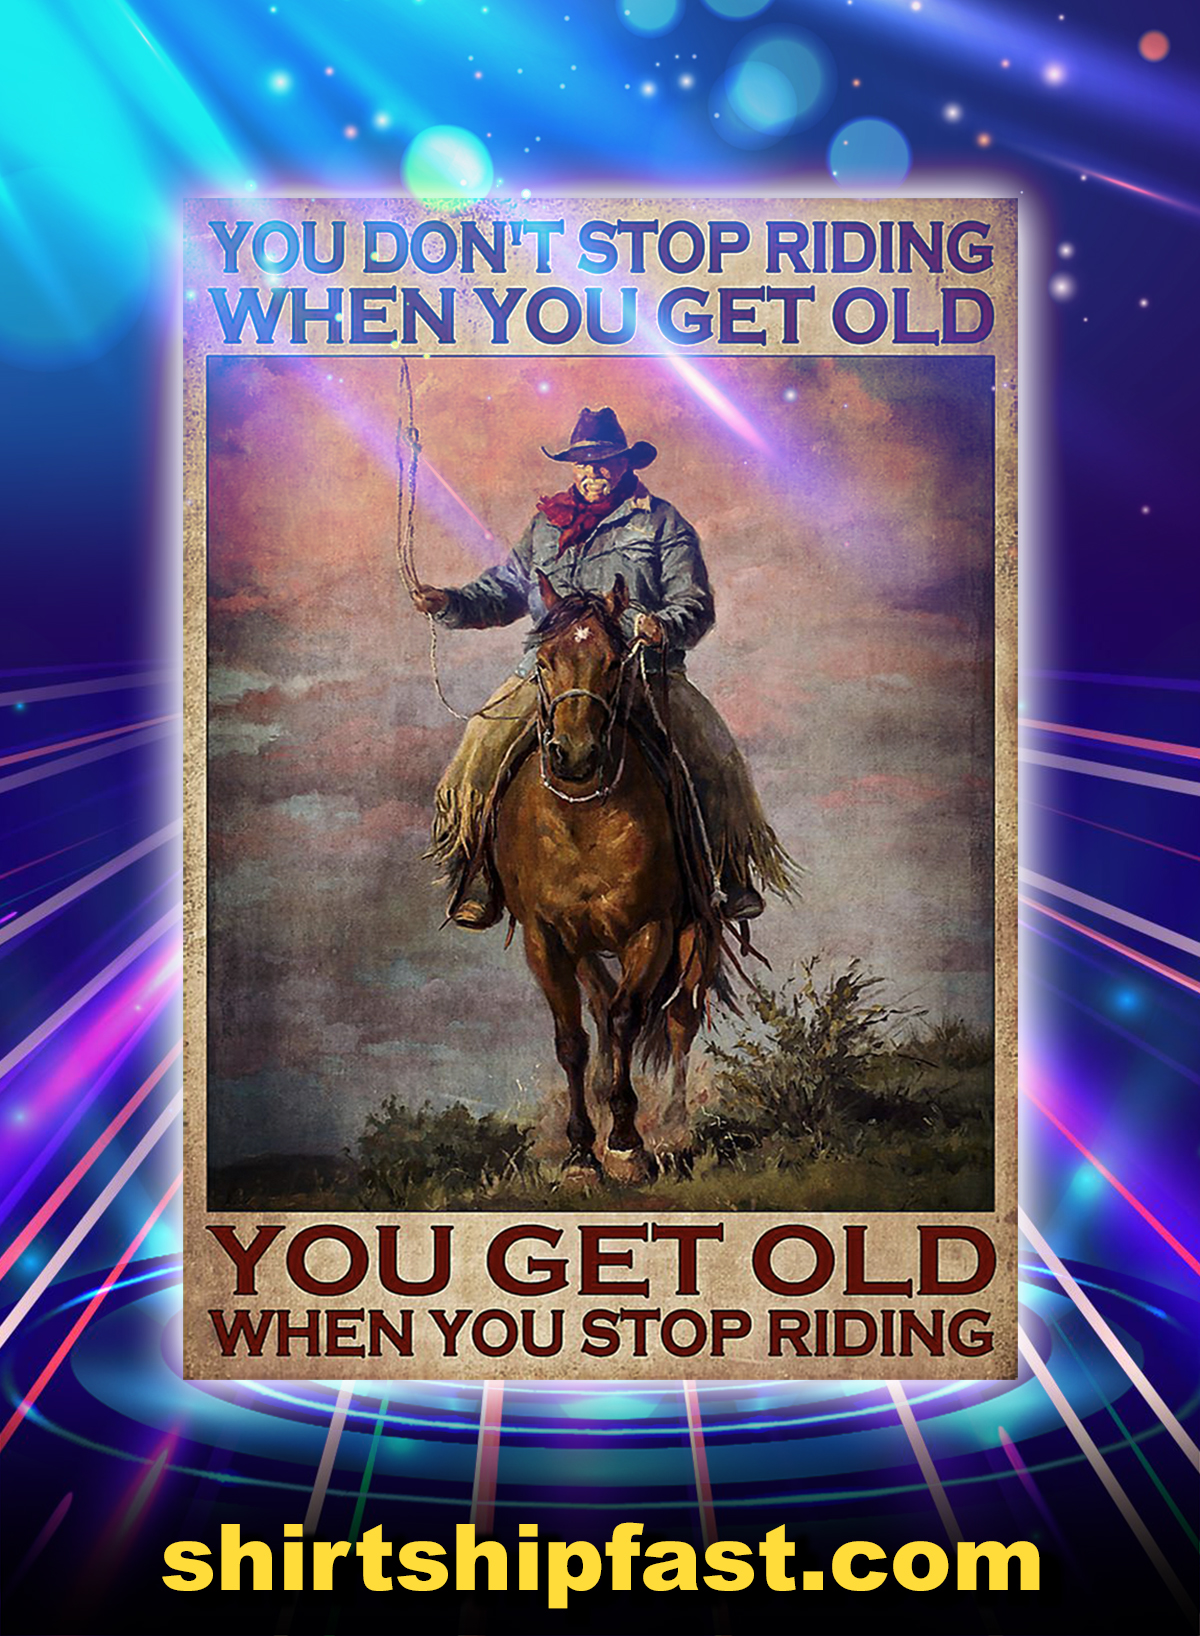 Old man and horse You don't stop riding when you get old poster - A1